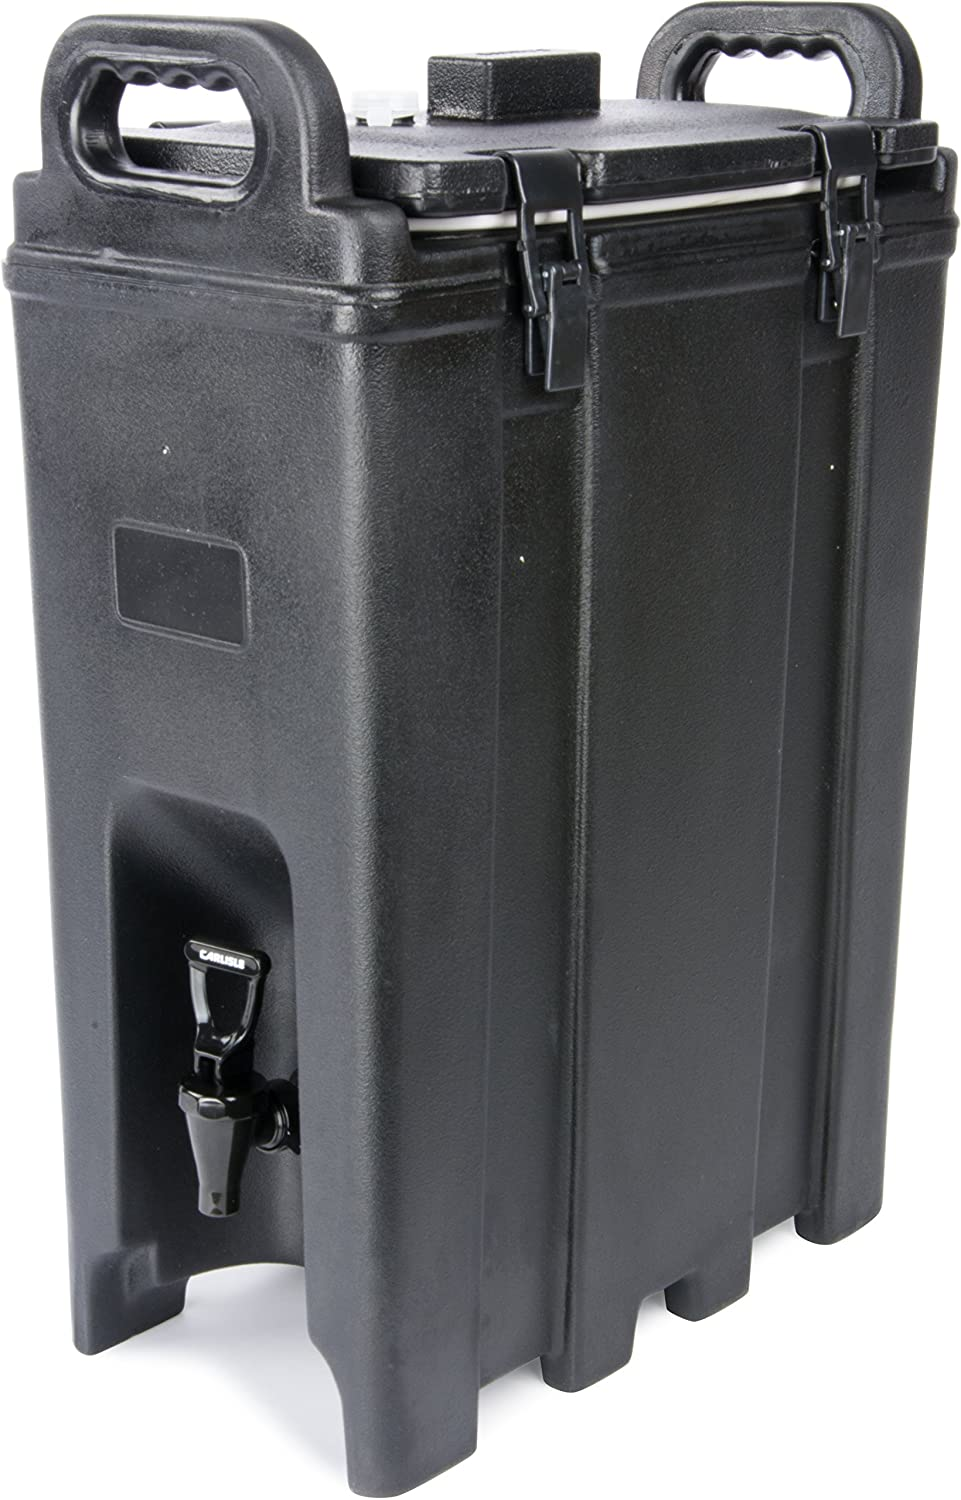 Carlisle LD500N03 Cateraide Polyethylene Insulated Beverage Server, 5 gal. Capacity, 16-3/8 L x 9 W x 24.20 H, Black Carlisle FoodService Products LD500N-03